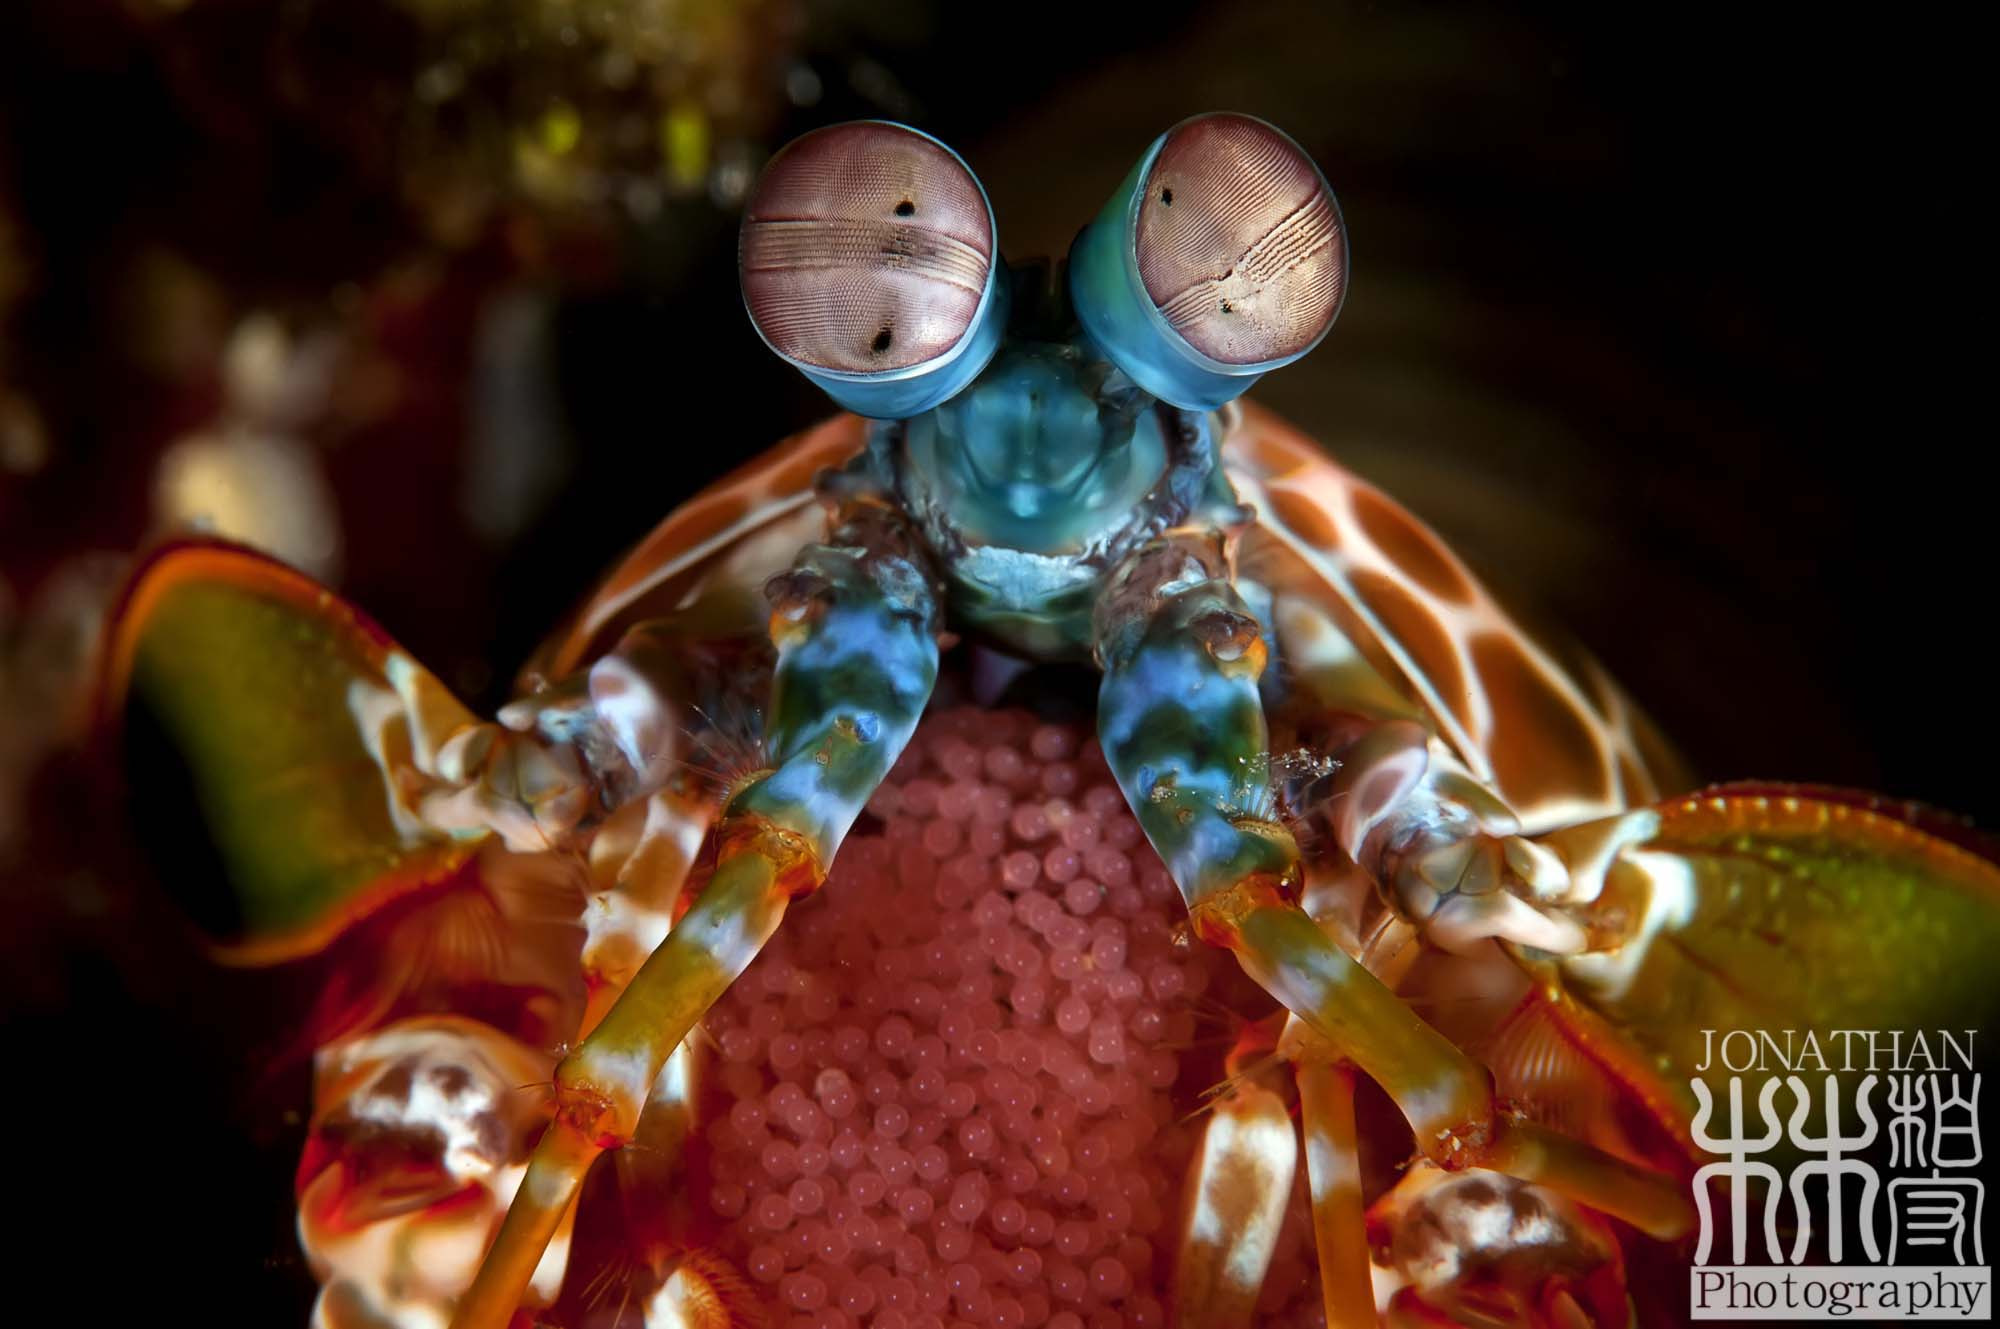 Photograph Peacock Mantis Shrimp with Eggs by Jonathan Lin on 500px